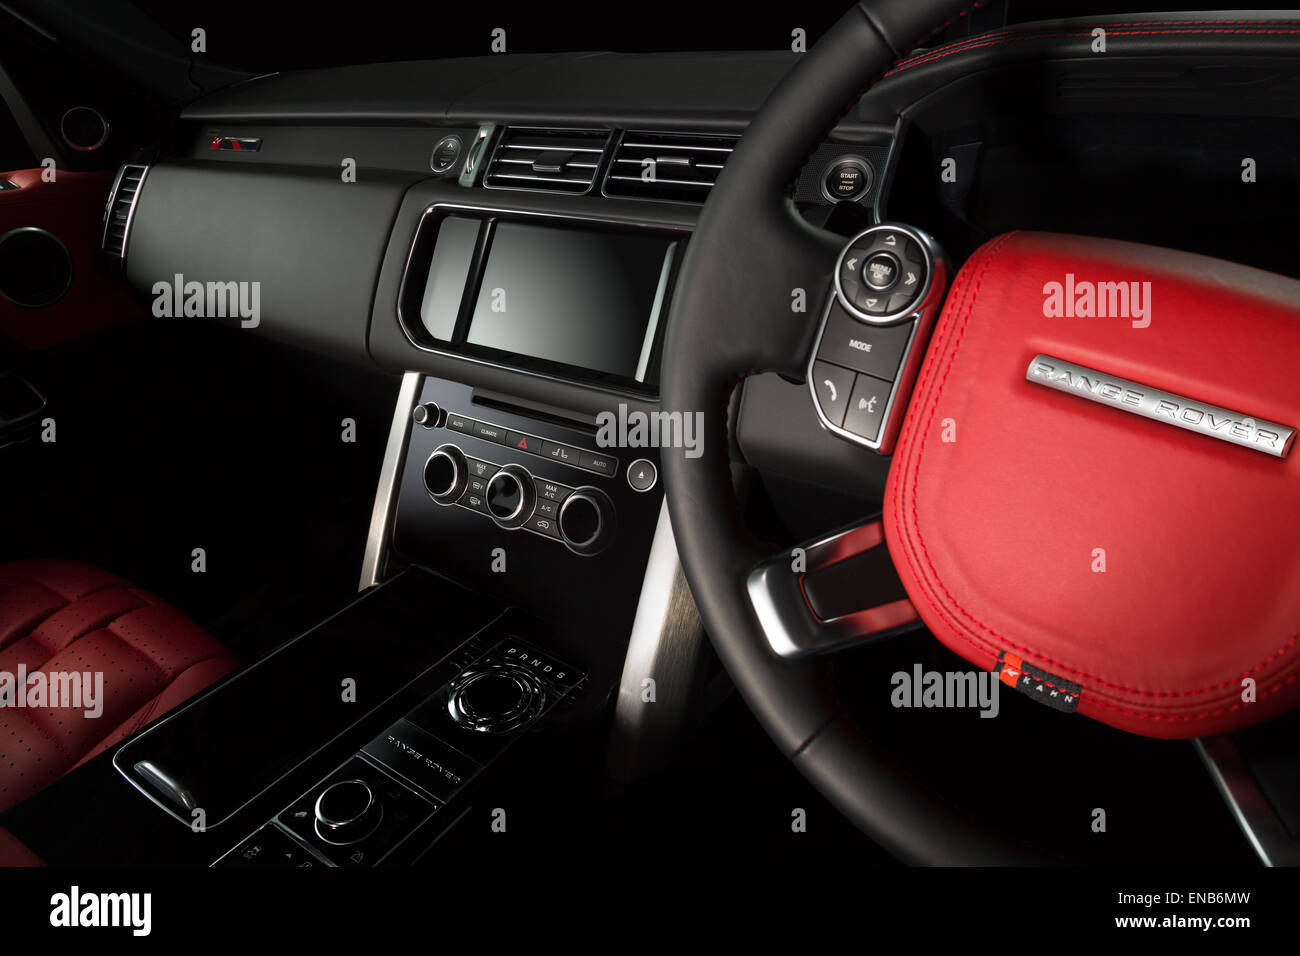 Range Rover Evoque Black Red Interior